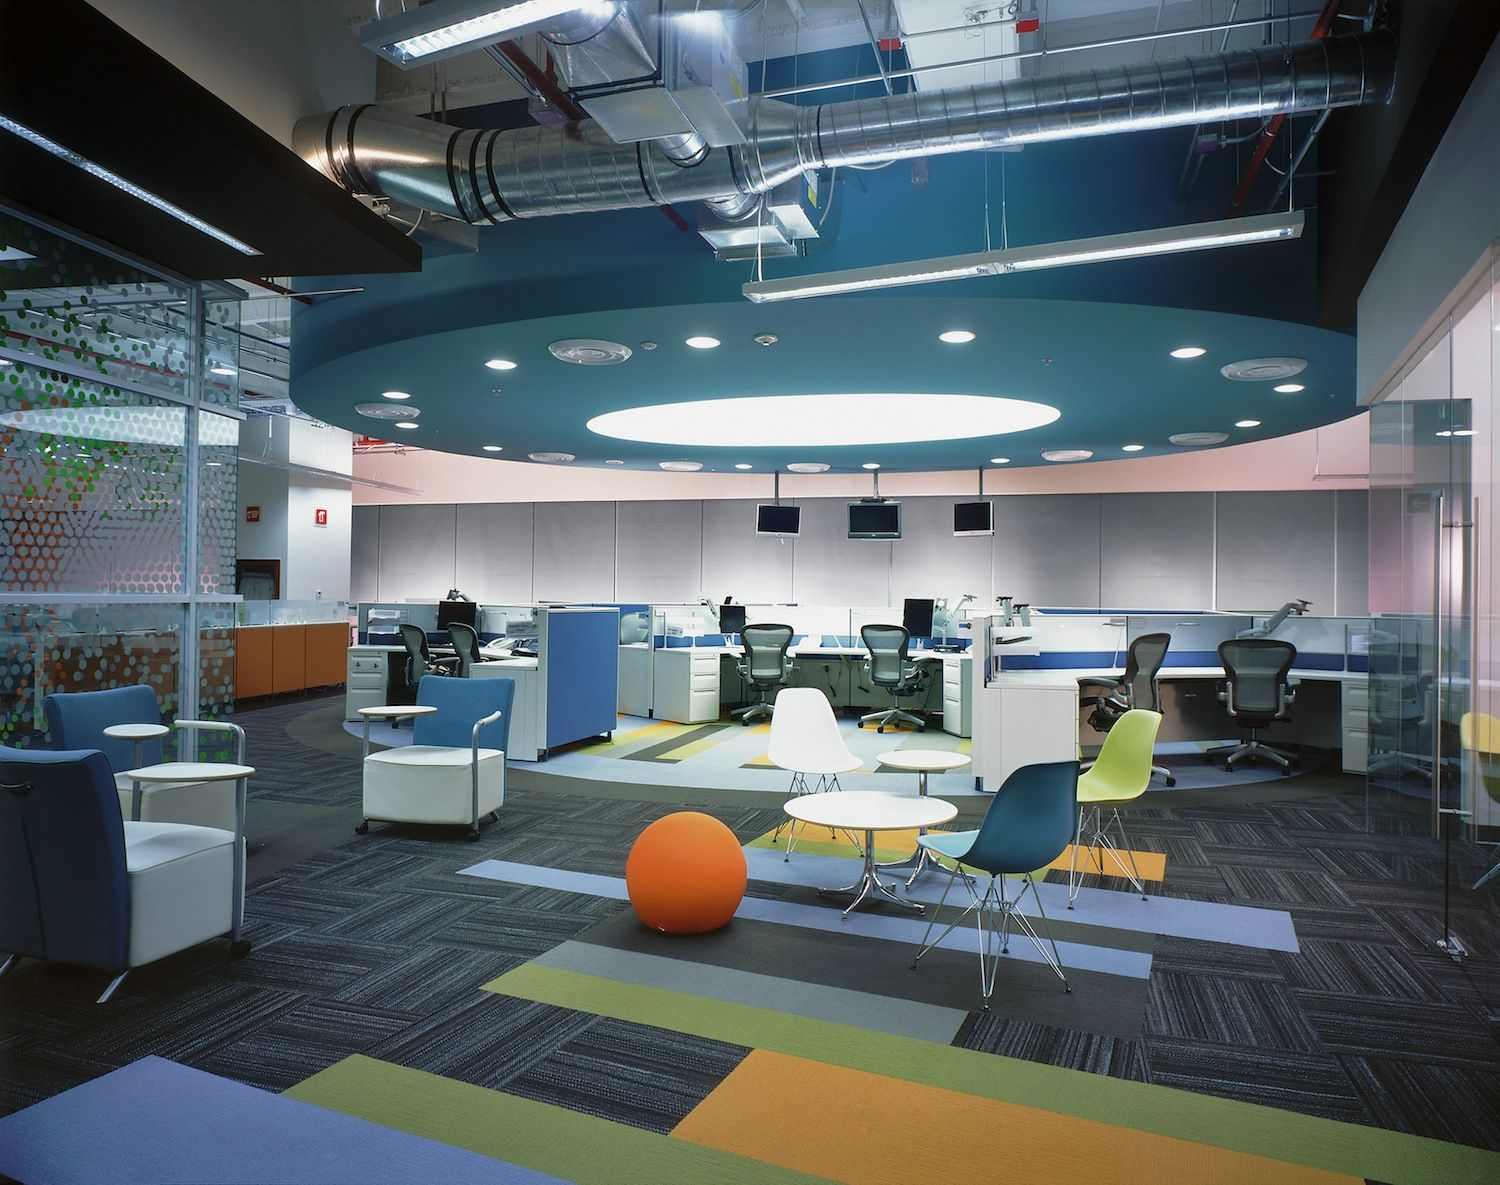 Msn office headquarters interior design